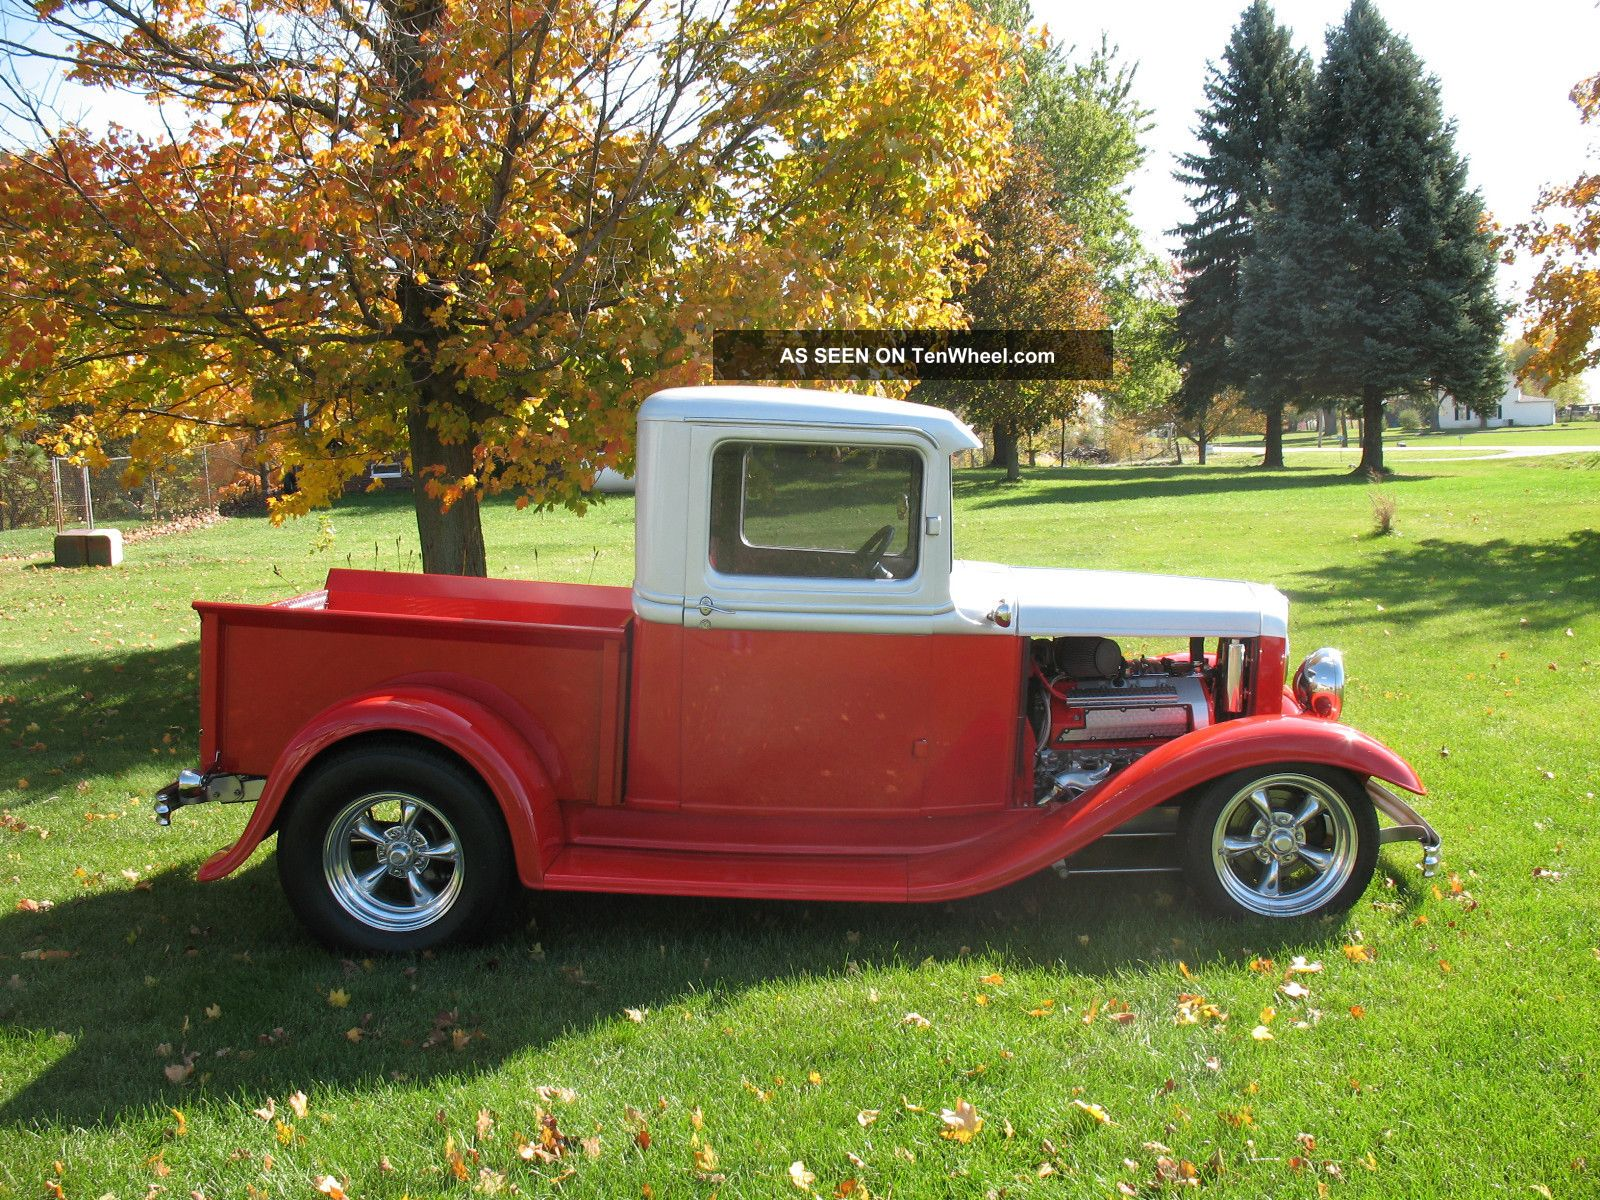 1932 Ford Pickup Truck 4.  6 Jag Rear Build 3 Window Sedan Roadster 1934 Coupe Other photo